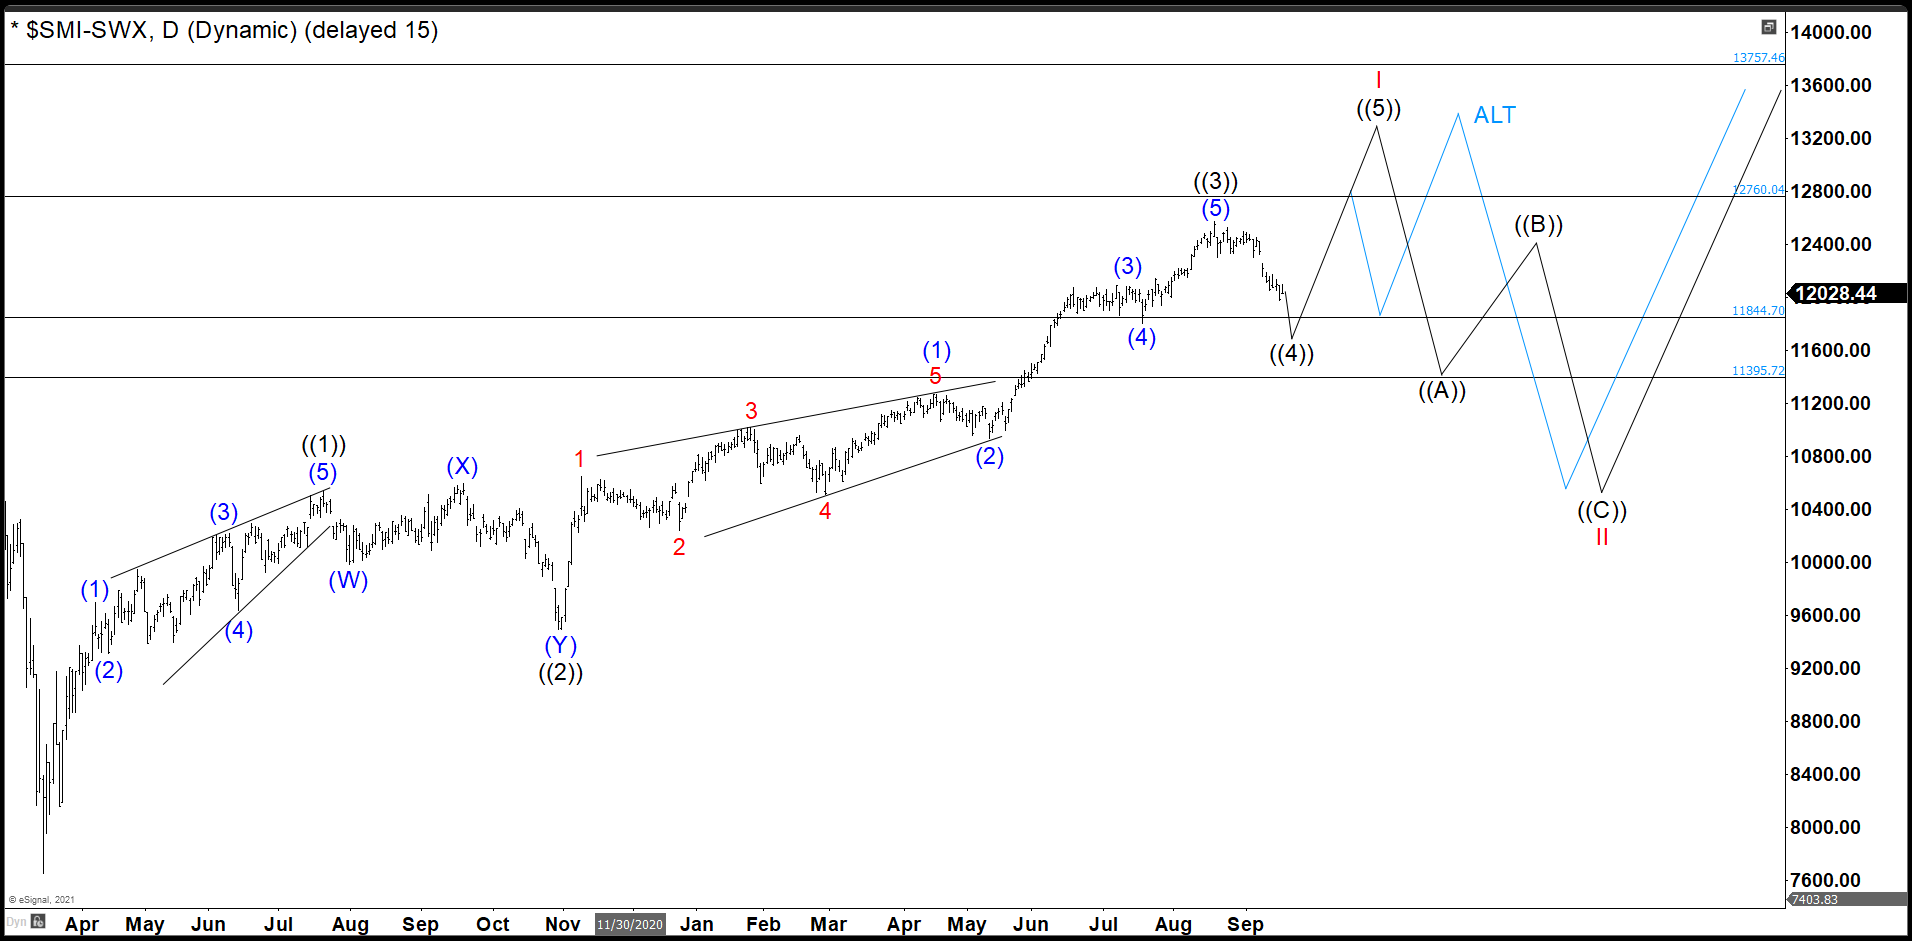 Swiss Market Index (SMI) Developing A Motive Wave From March 2020